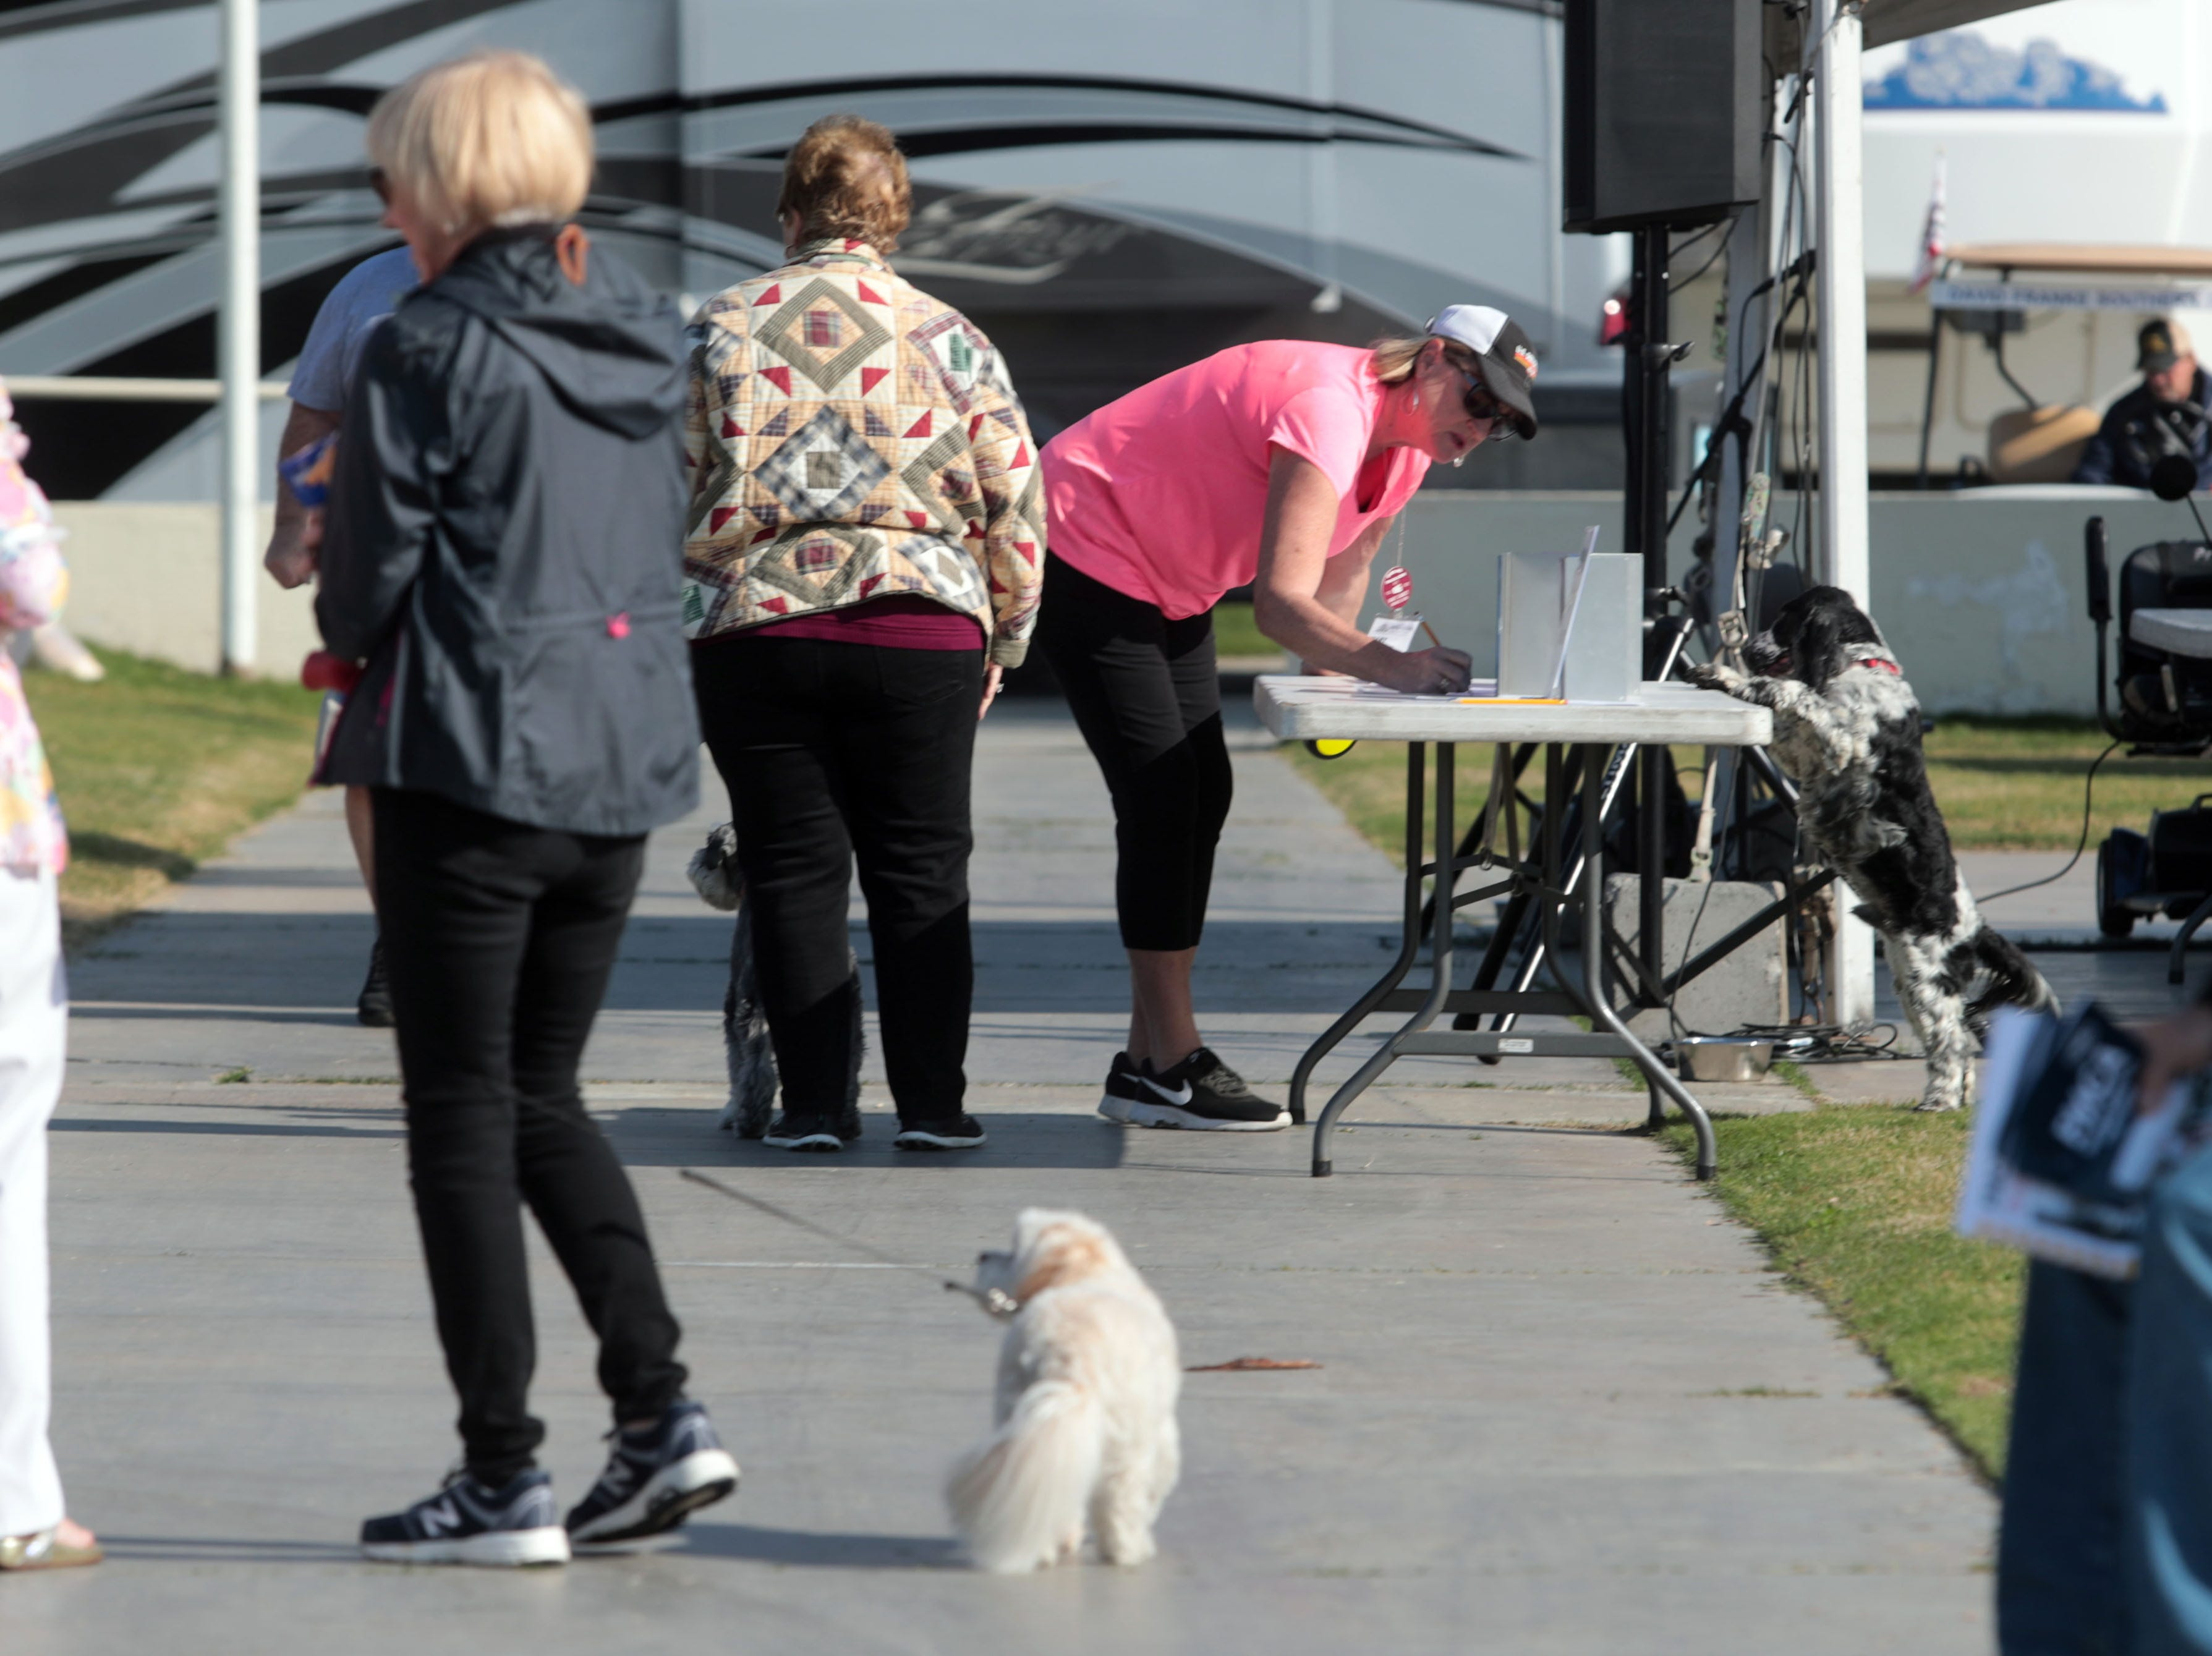 A pet show on Saturday, January 12, 2019 in Indio, during the FMCA annual motorhome convention.